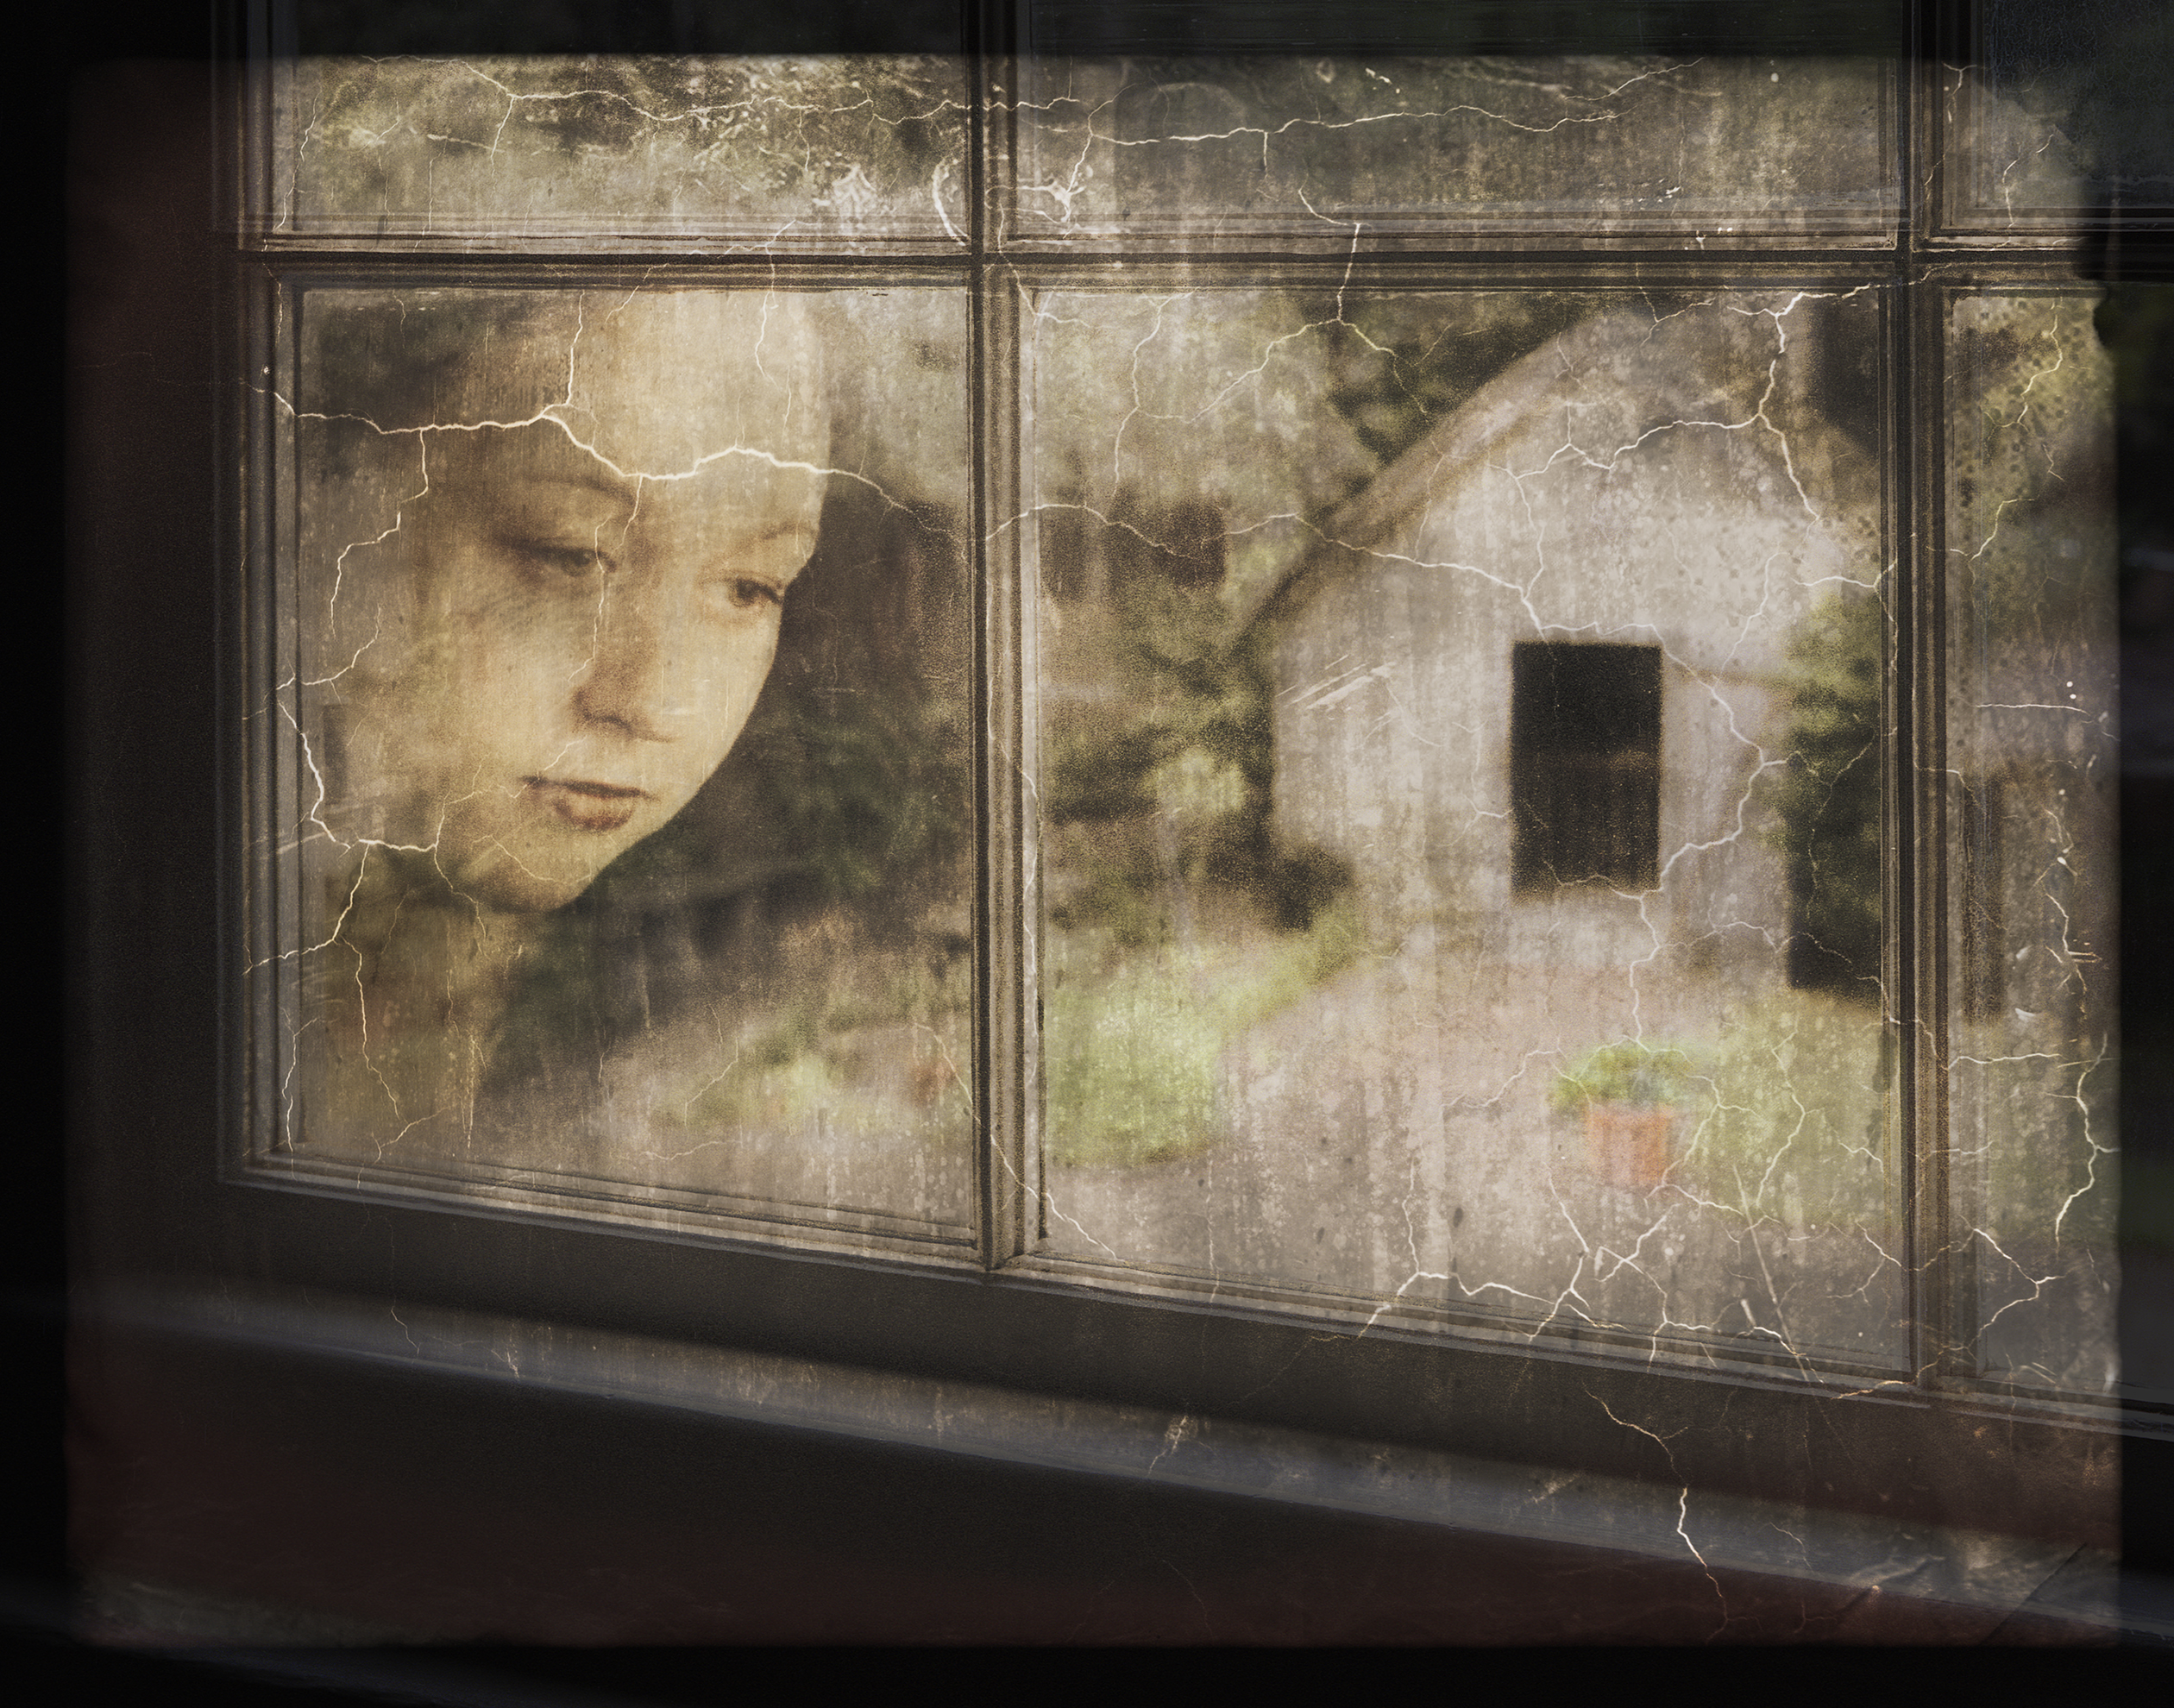 'Yearning', photographic art by Kathleen Warren ($250) ⎼ 'Is she yearning to be outside or is it me yearning to be free? This image was inspired by the story of Maria/Mary from the Gonzalez-Alvarez house ('Oldest House' in Saint Augustine. Like this young woman, I find myself yearning for something.'